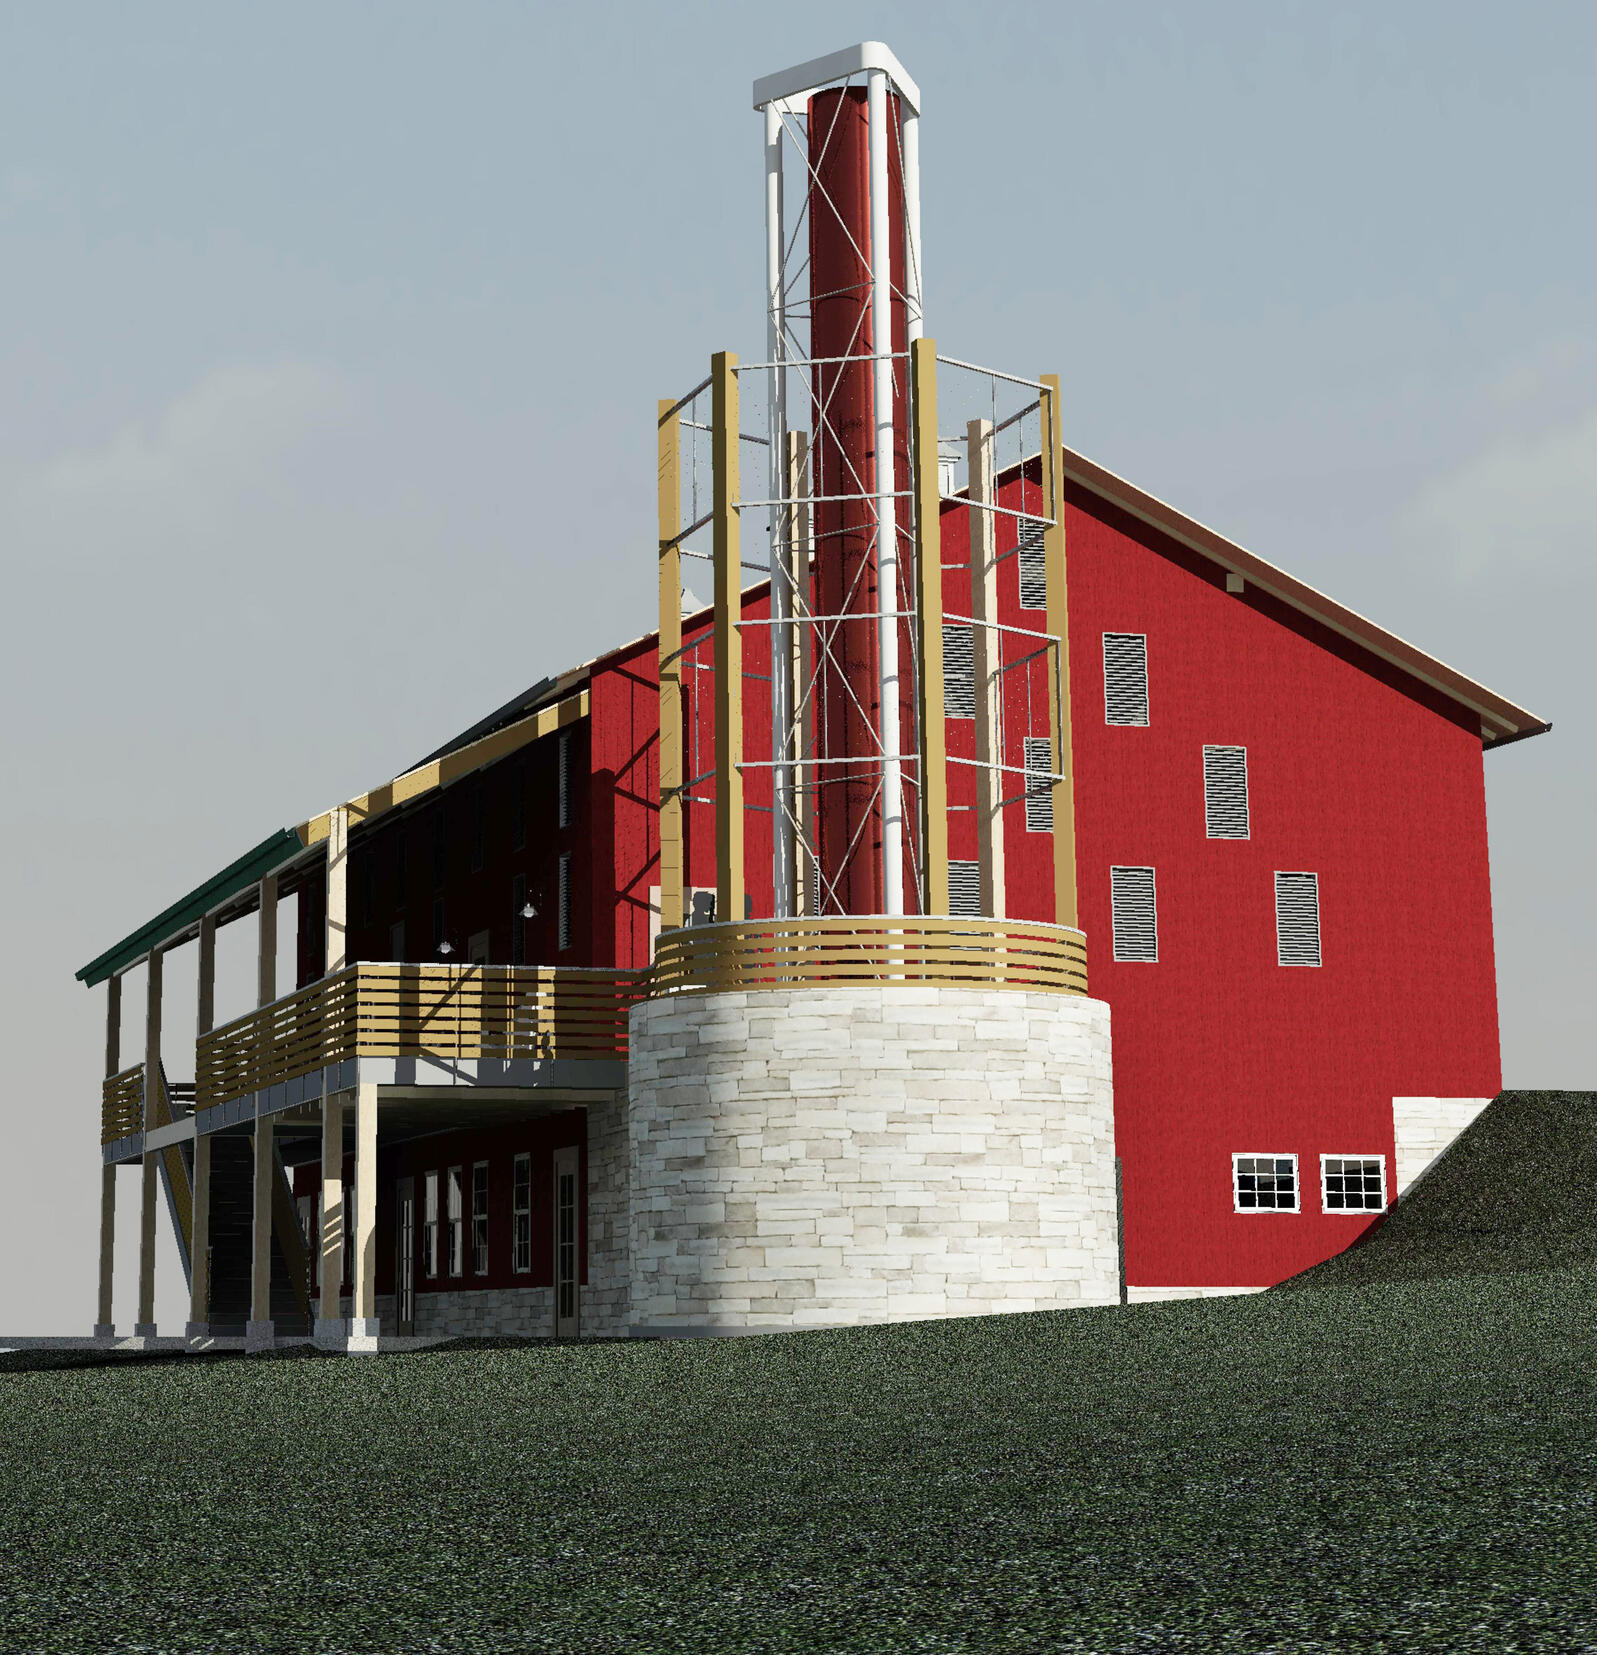 Barn renovation at Succop Nature Park featuring 40-foot vertical-axis WindStax wind turbine. Courtesy of Moshier Studio